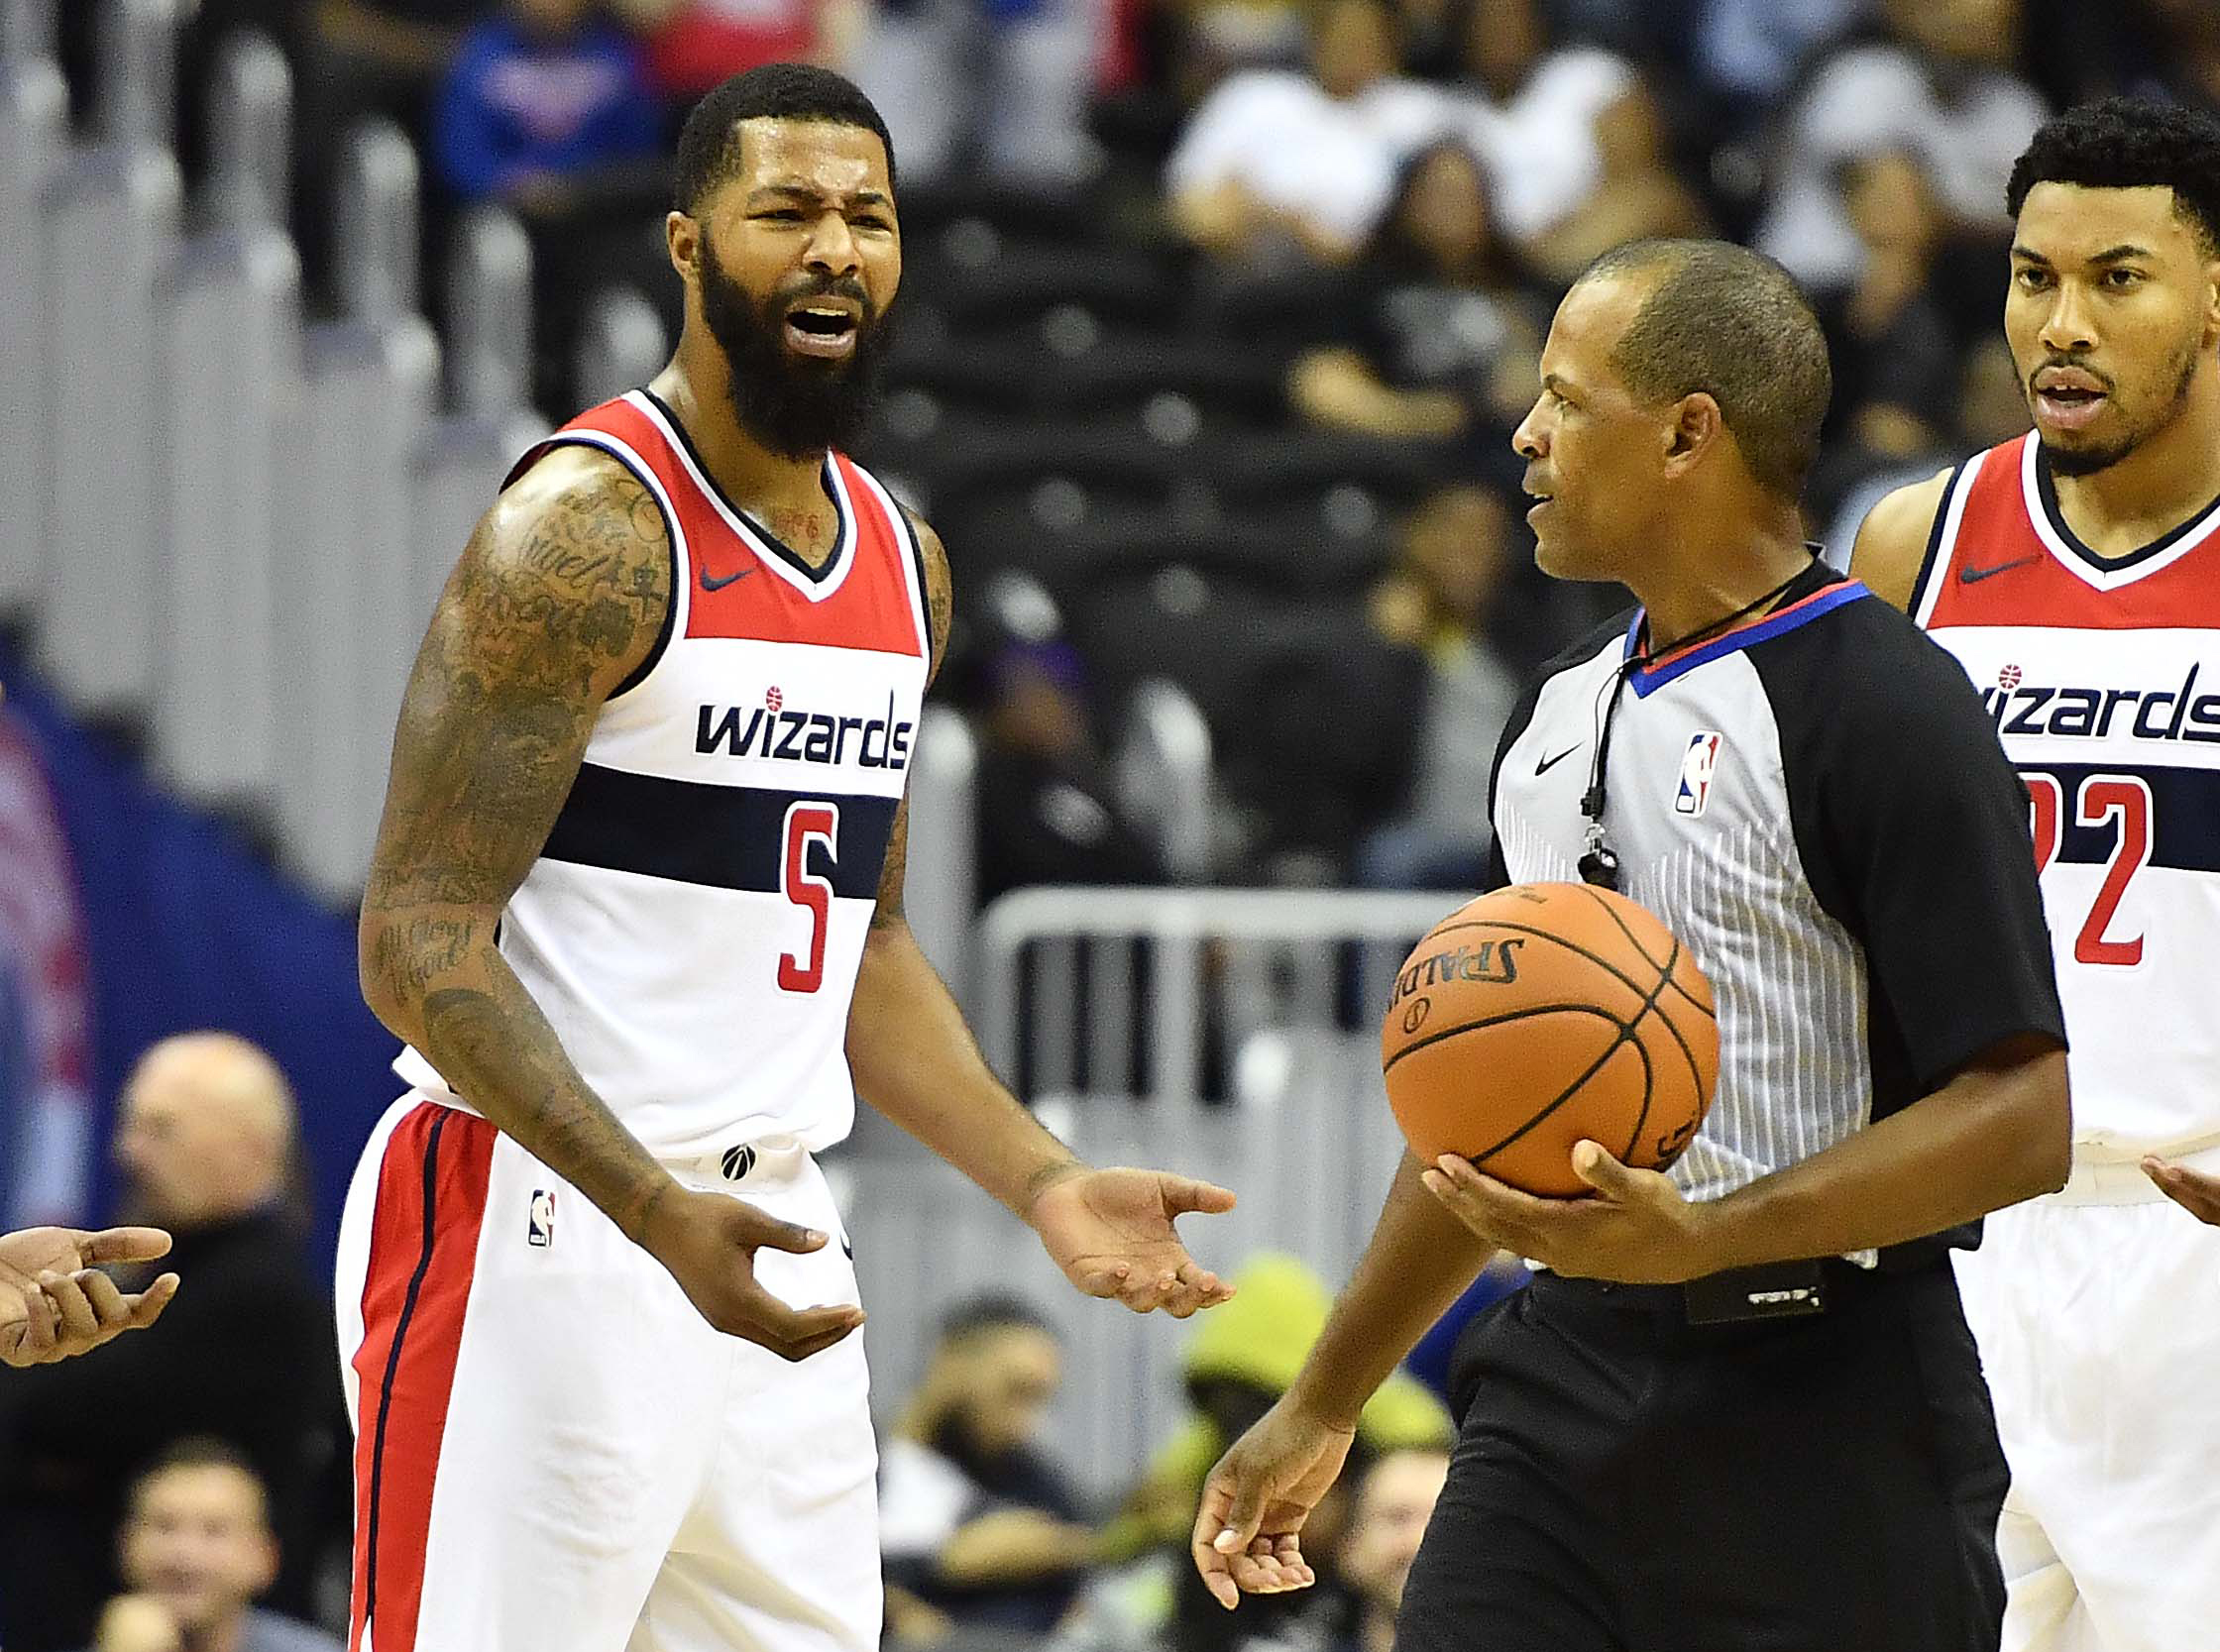 Hot heads prevail as Wizards drop preseason opener to Knicks